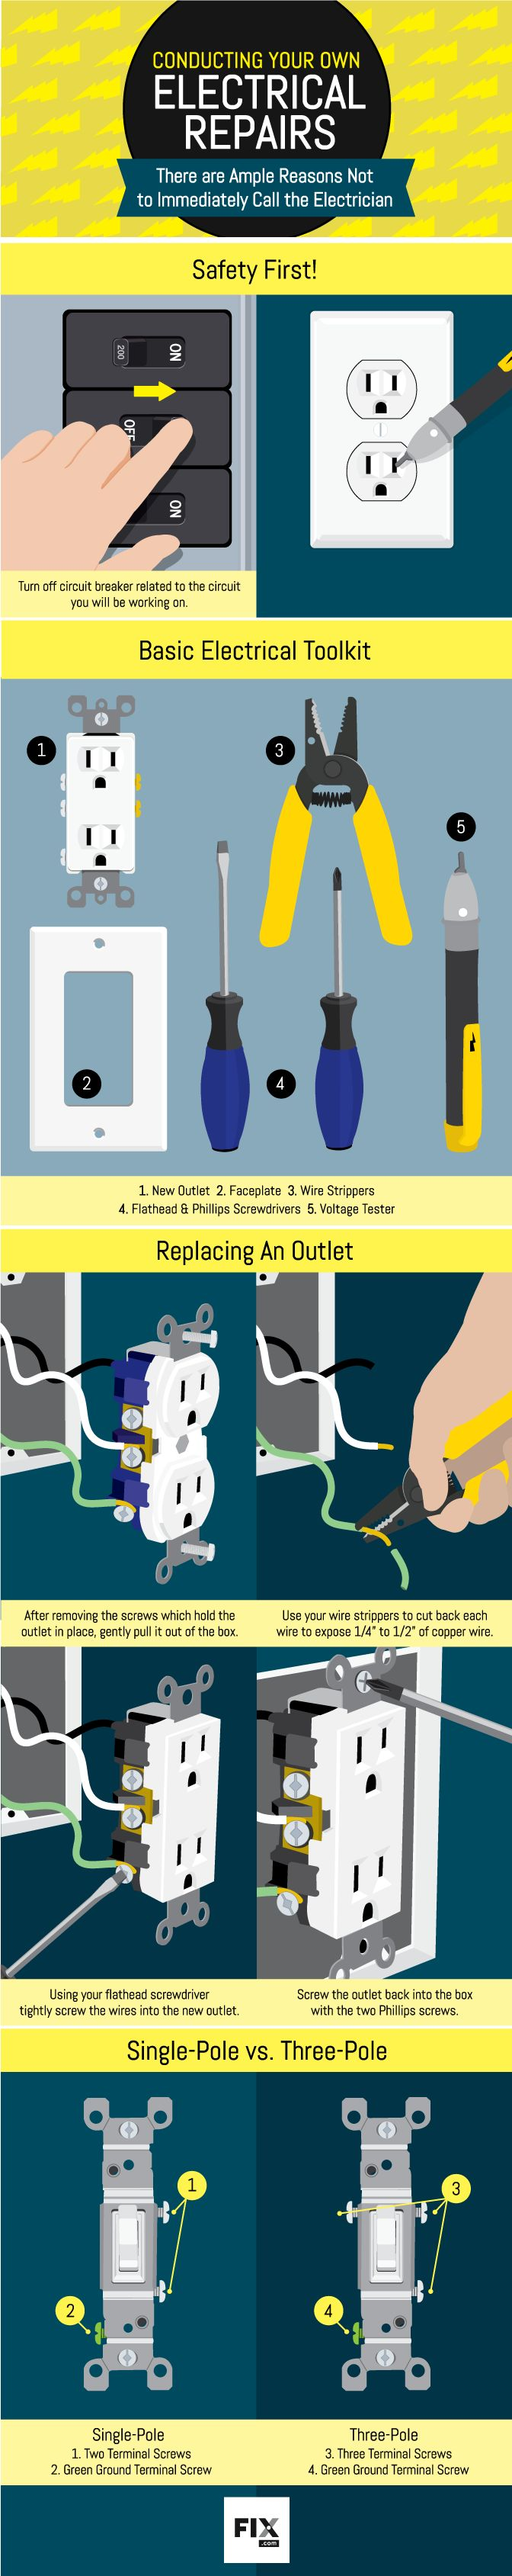 Conducting Your Own Easy Electrical Repairs #infographic #DIY #Electrical